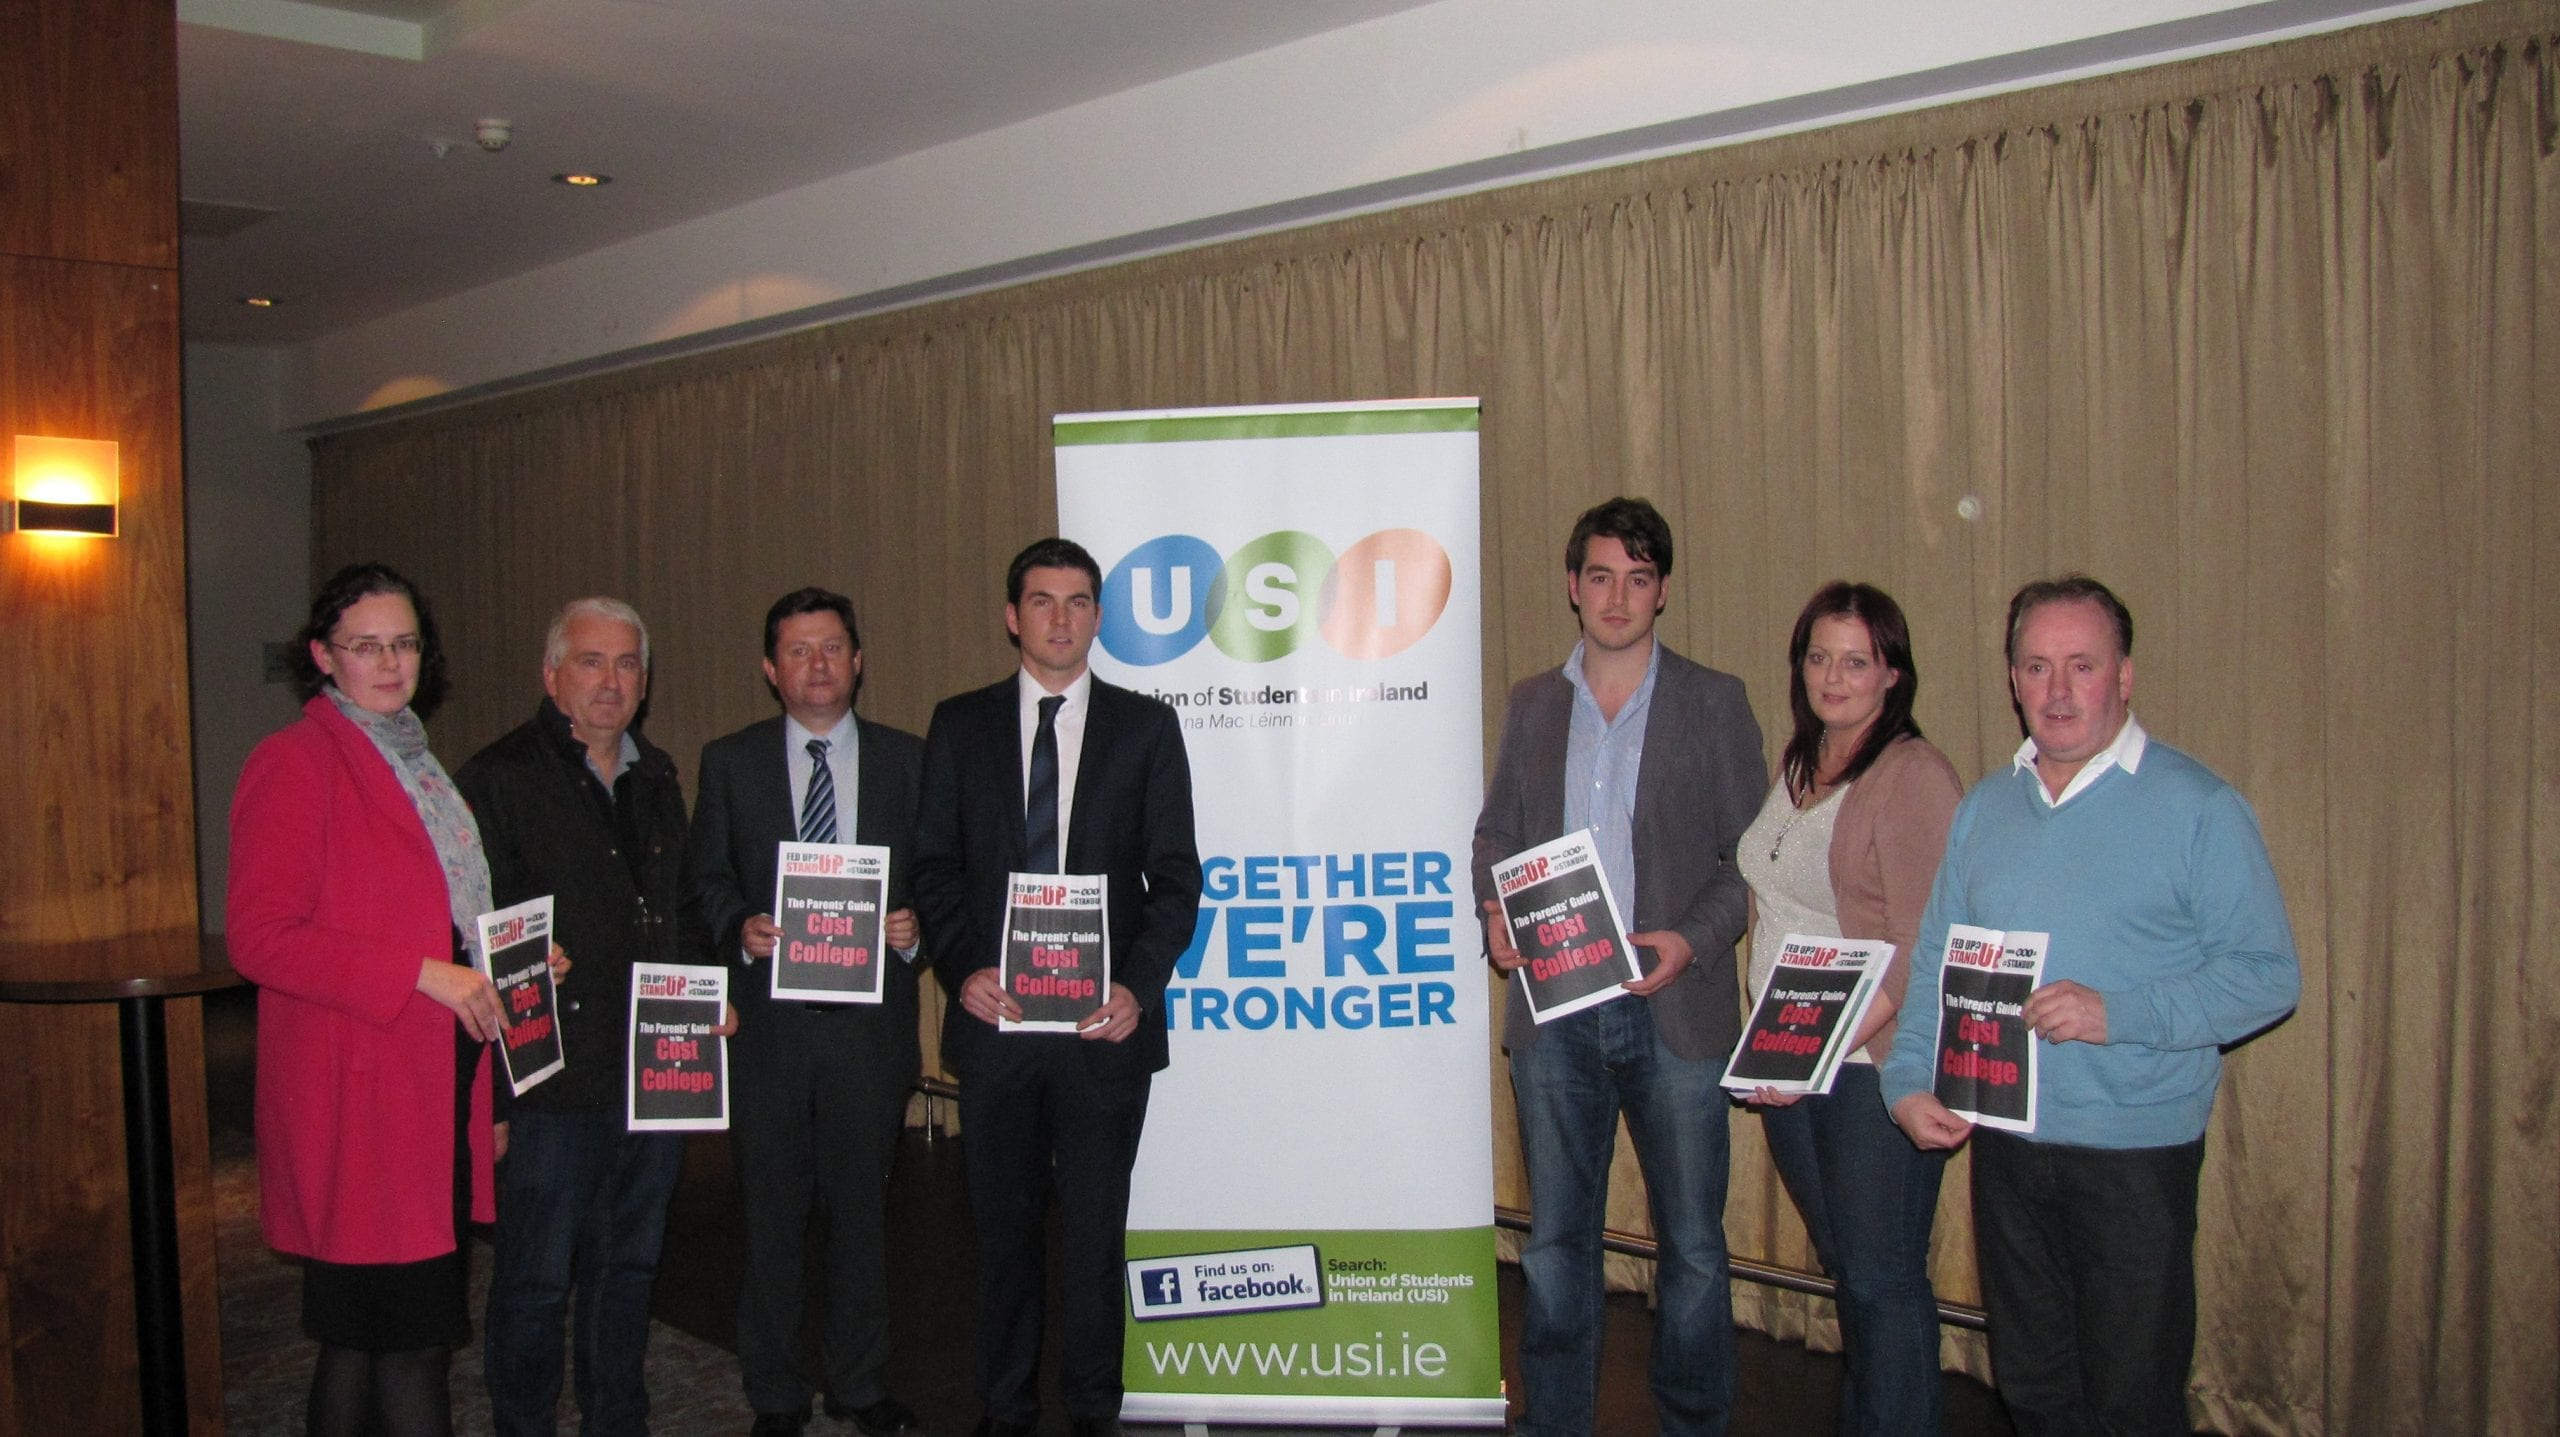 Dundalk IT President comes out against fee hikes at USI Public Meeting